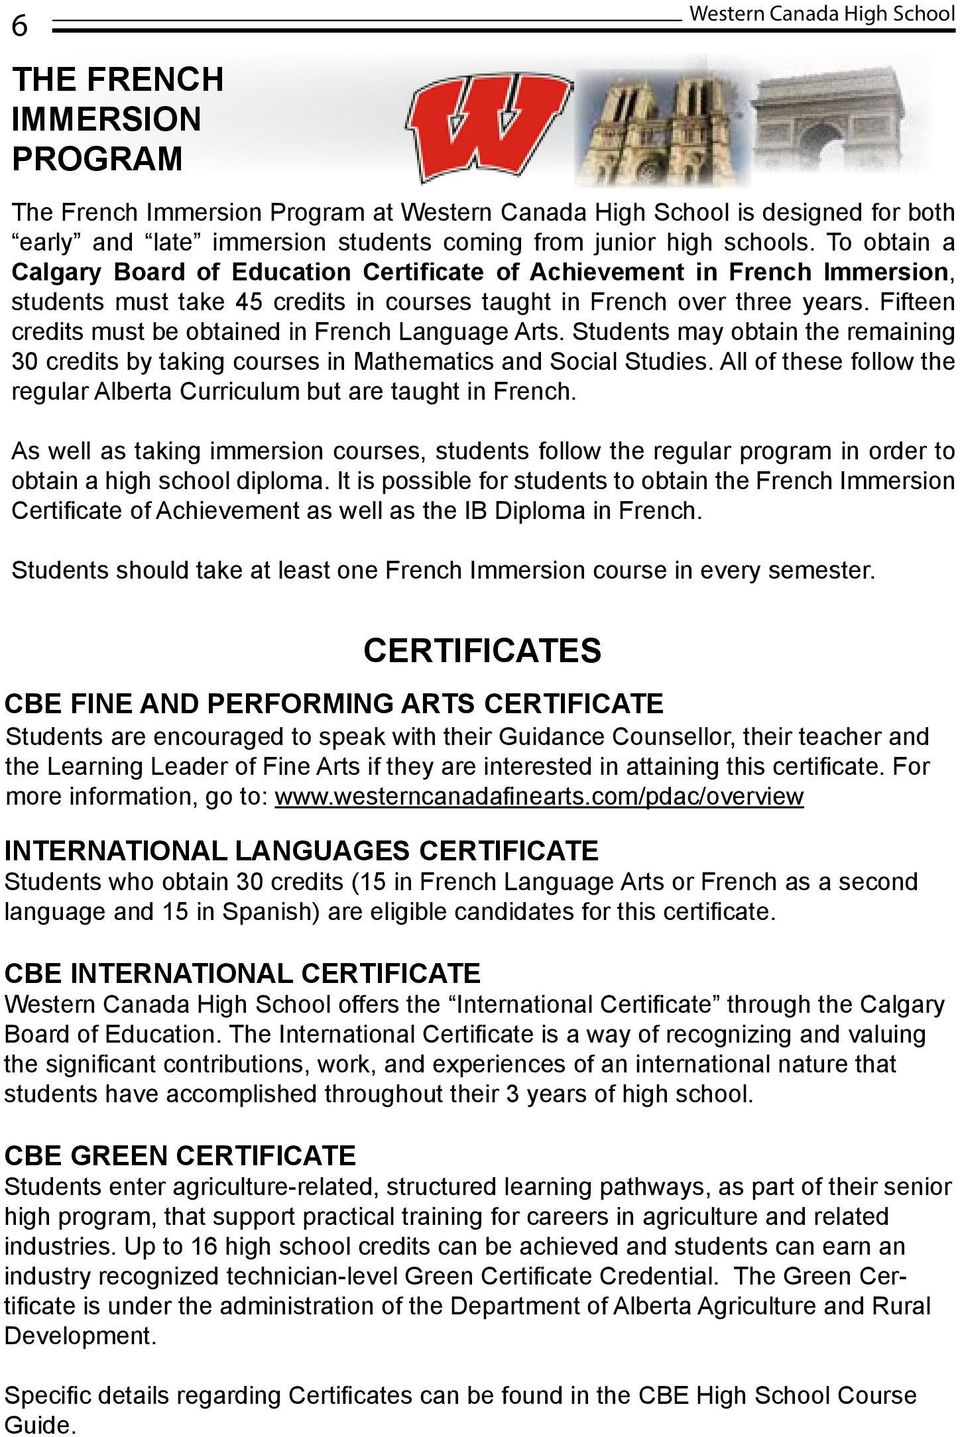 Fifteen credits must be obtained in French Language Arts. Students may obtain the remaining 30 credits by taking courses in Mathematics and Social Studies.